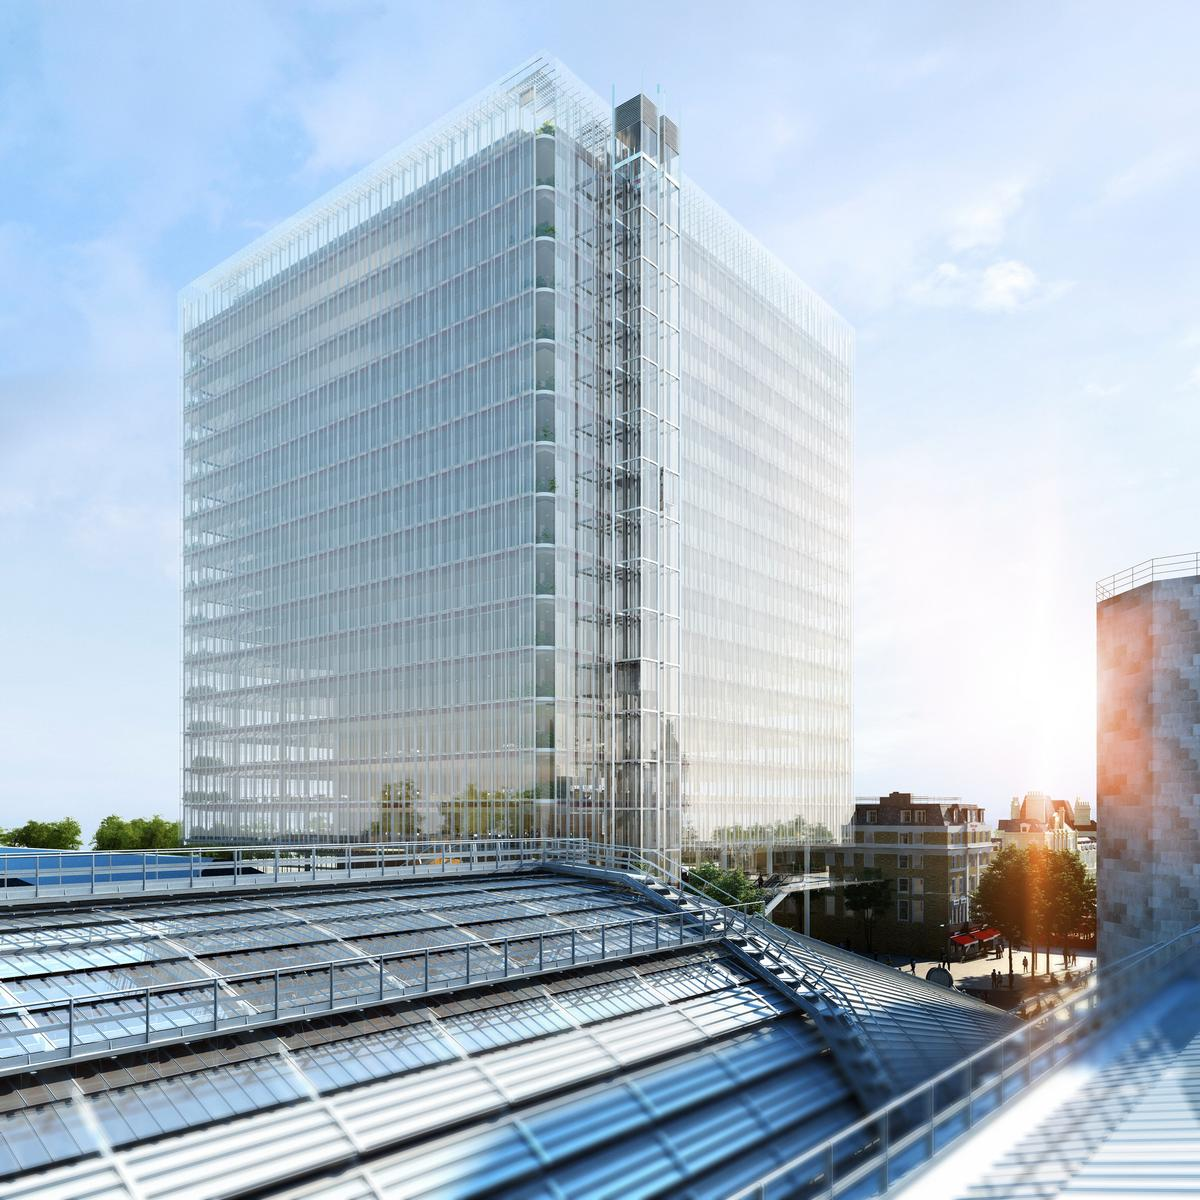 Renzo piano 39 s paddington cube wins reprieve from for Cubic hotel london